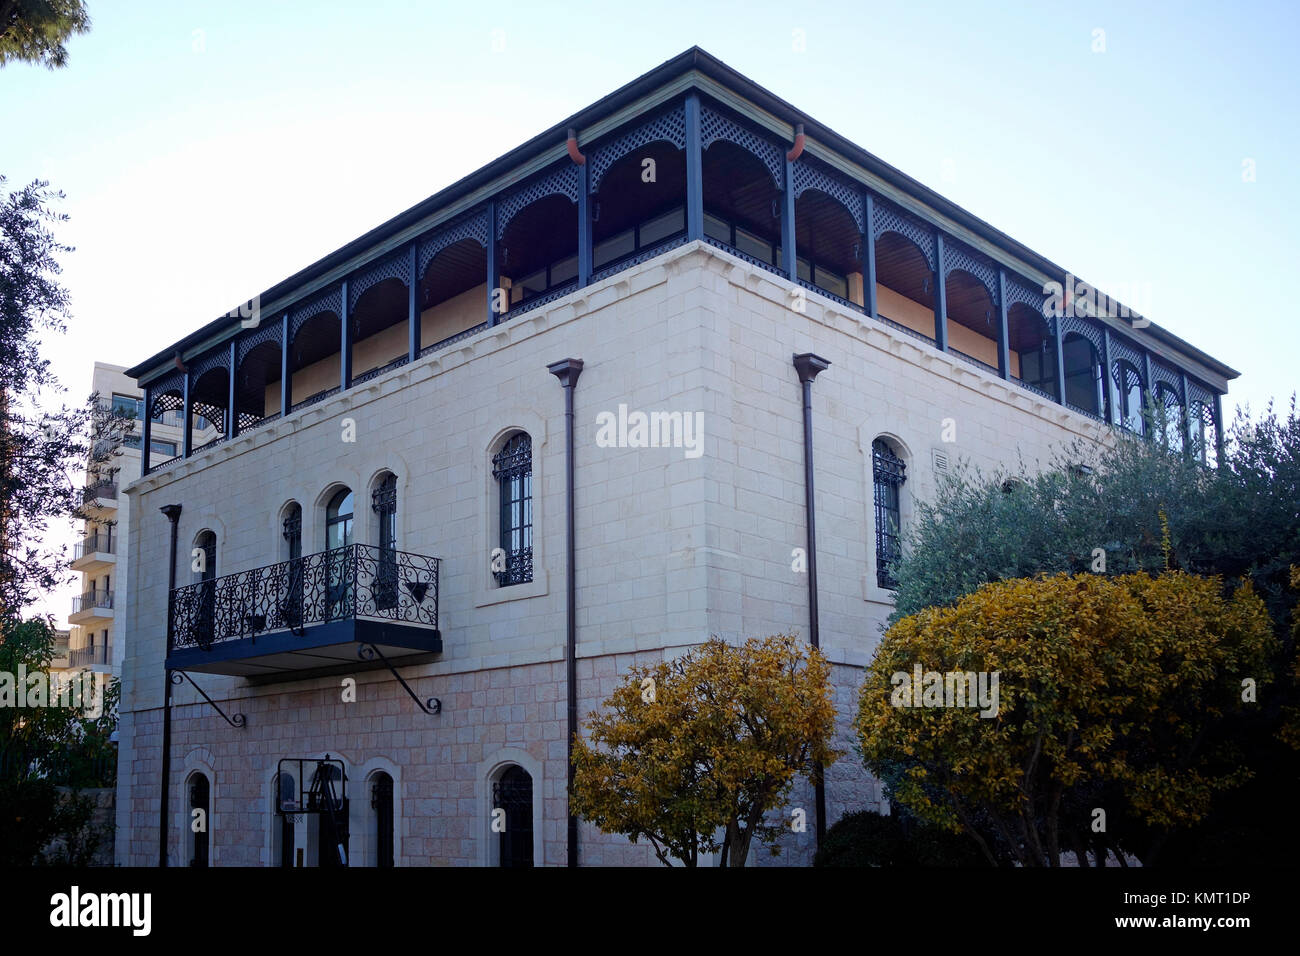 A renovated late-19th century house now owned by Jewish American billionaire Joseph Mordechai Tabak, who serves - Stock Image